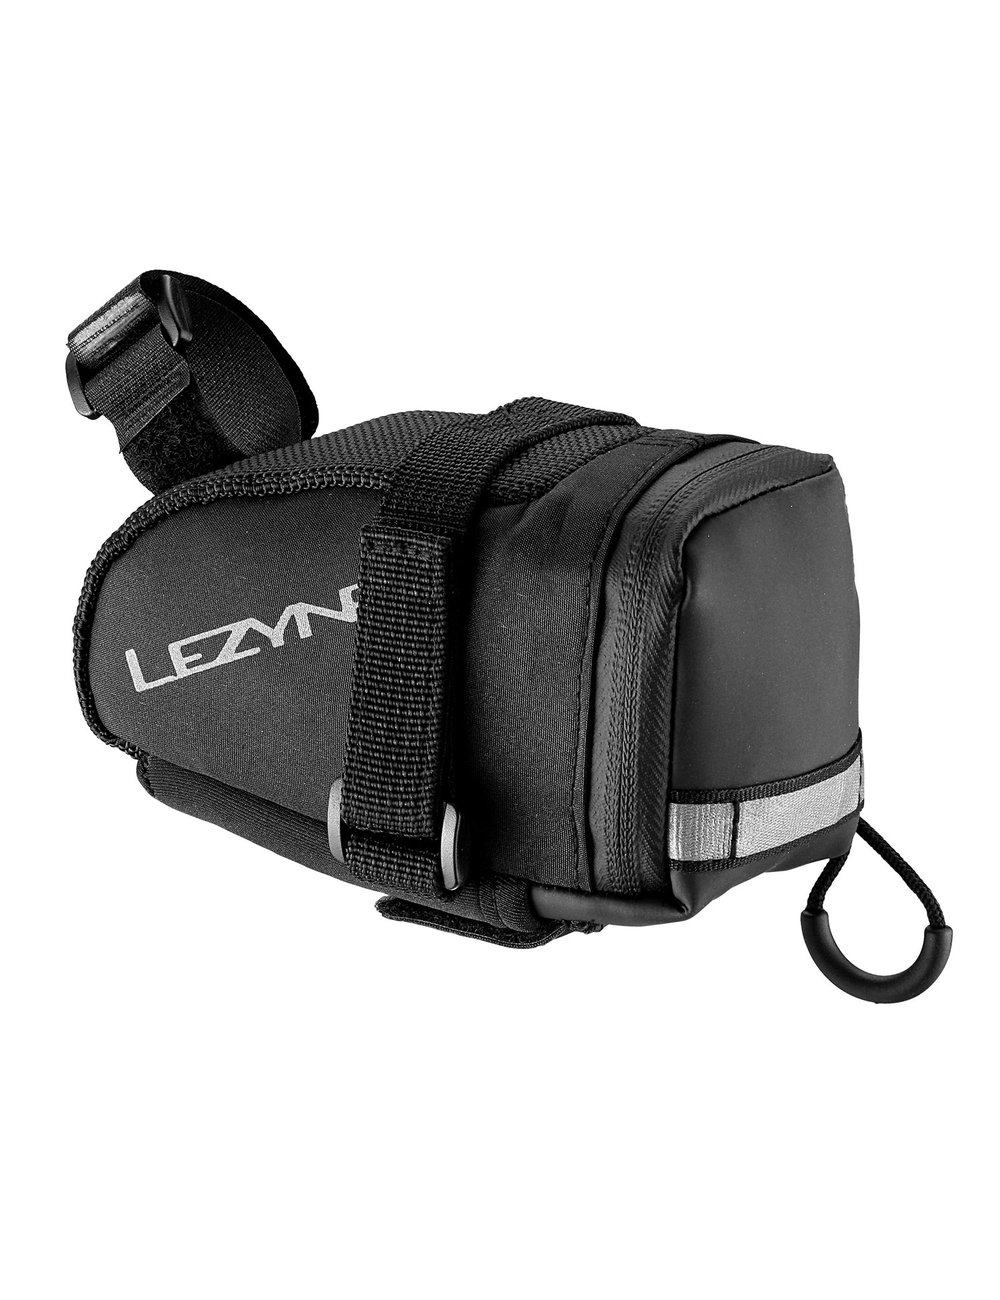 M-CADDY - Medium, wedge-shaped saddle bag. External, quick access multi-tool sleeve. Reflective loop increases night visibility. Water resistant zipper with large pull loop.